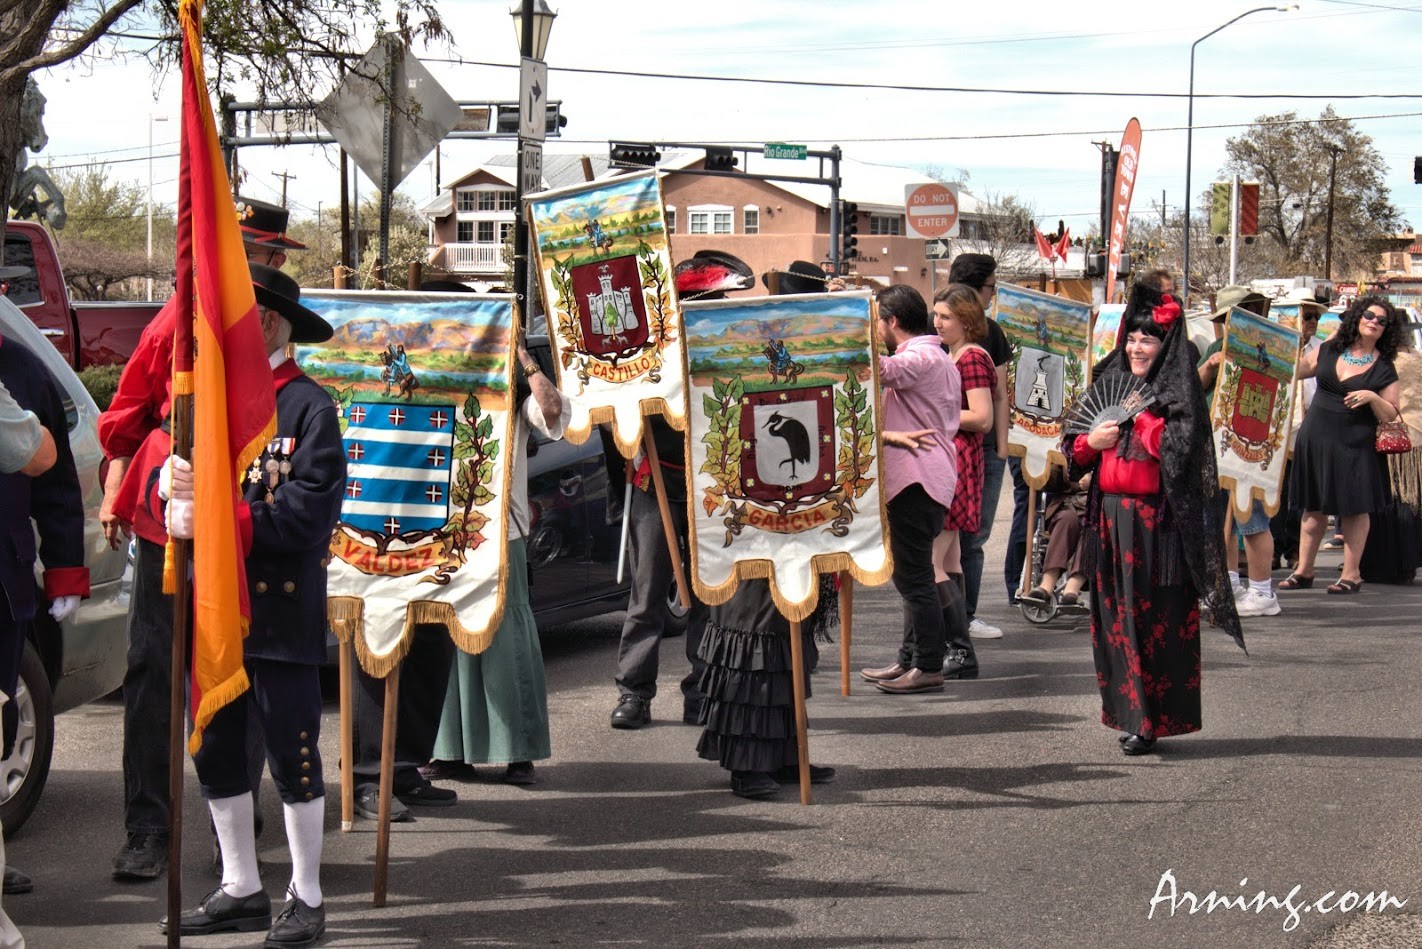 312th Founder's Day Parade in Albuquerque